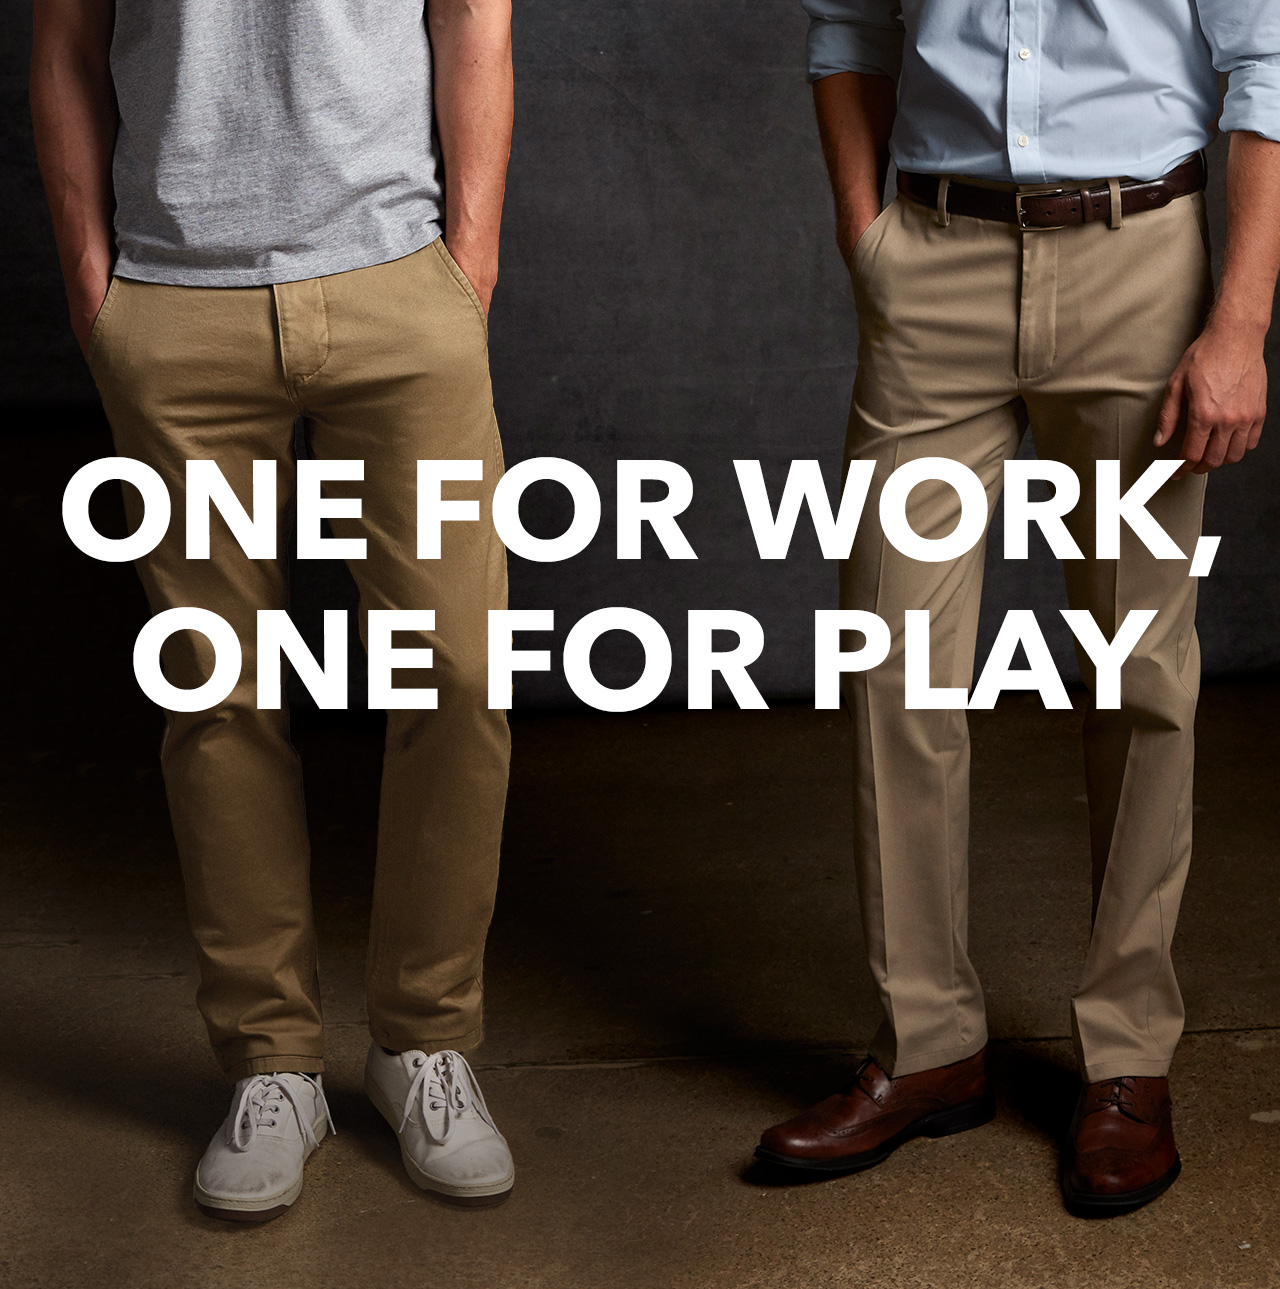 ONE FOR WORK, ONE FOR PLAY  SHOP ALL KHAKIS. WE HAVE A FIT FOR EVERYTHING